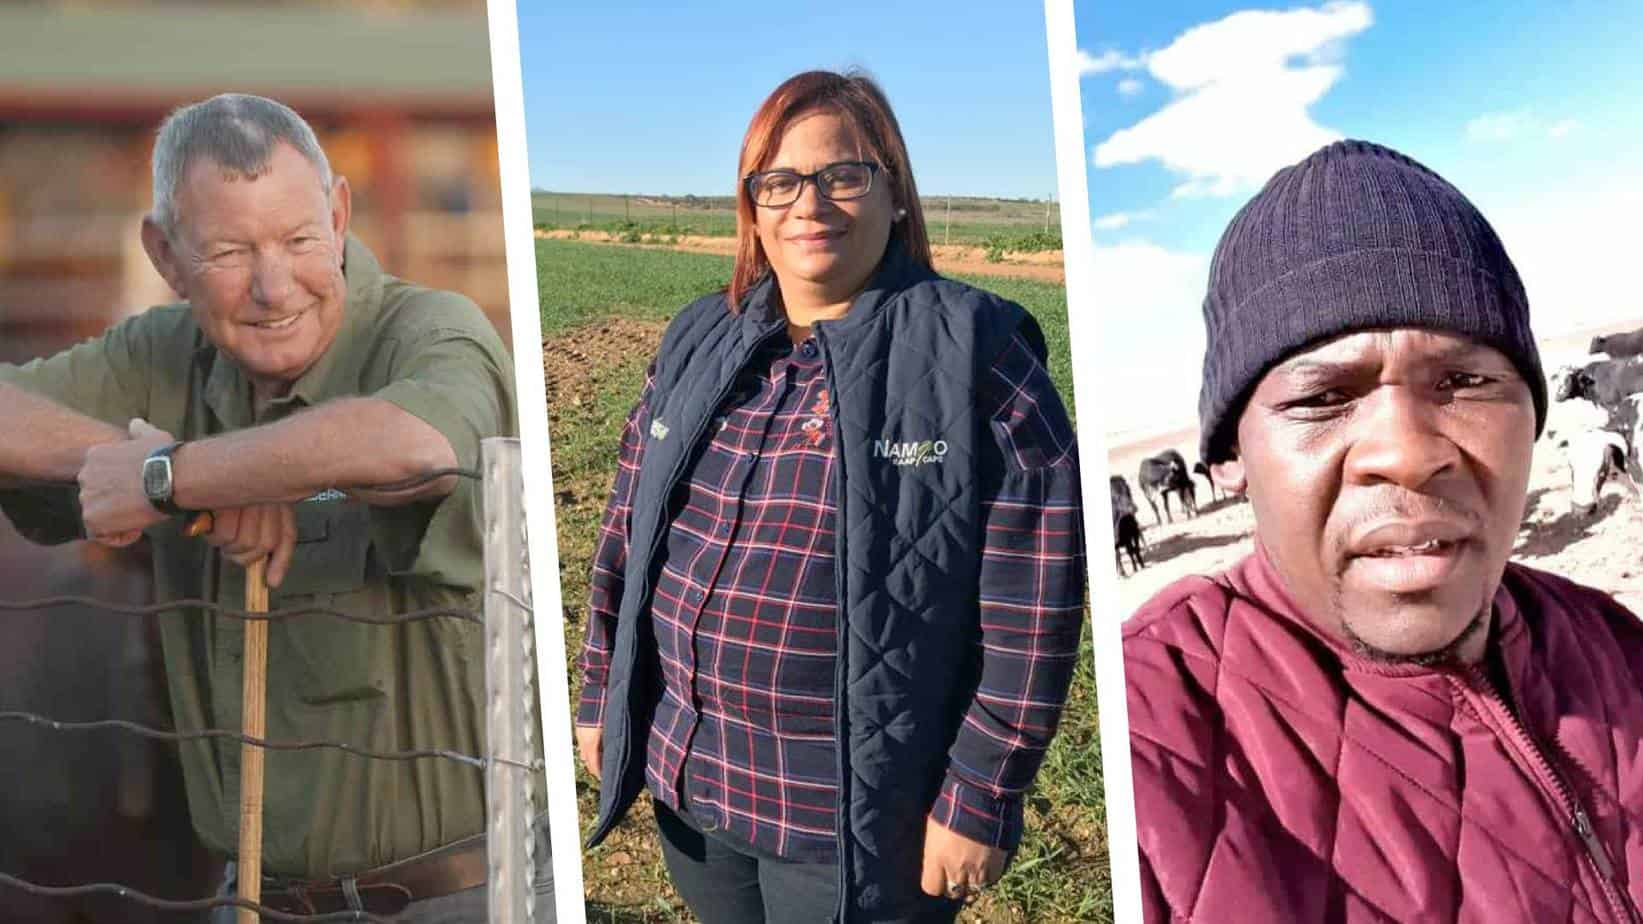 Meet some of the farmers who have pledged to assist their workers who wish to register for the Covid-19 vaccine. From the left are Nick Serfontein from Edenville, Alfreda Mars from Moorreesburg and Ratlale Masiu from Bloemfontein. Photos: Supplied/Food For Mzansi